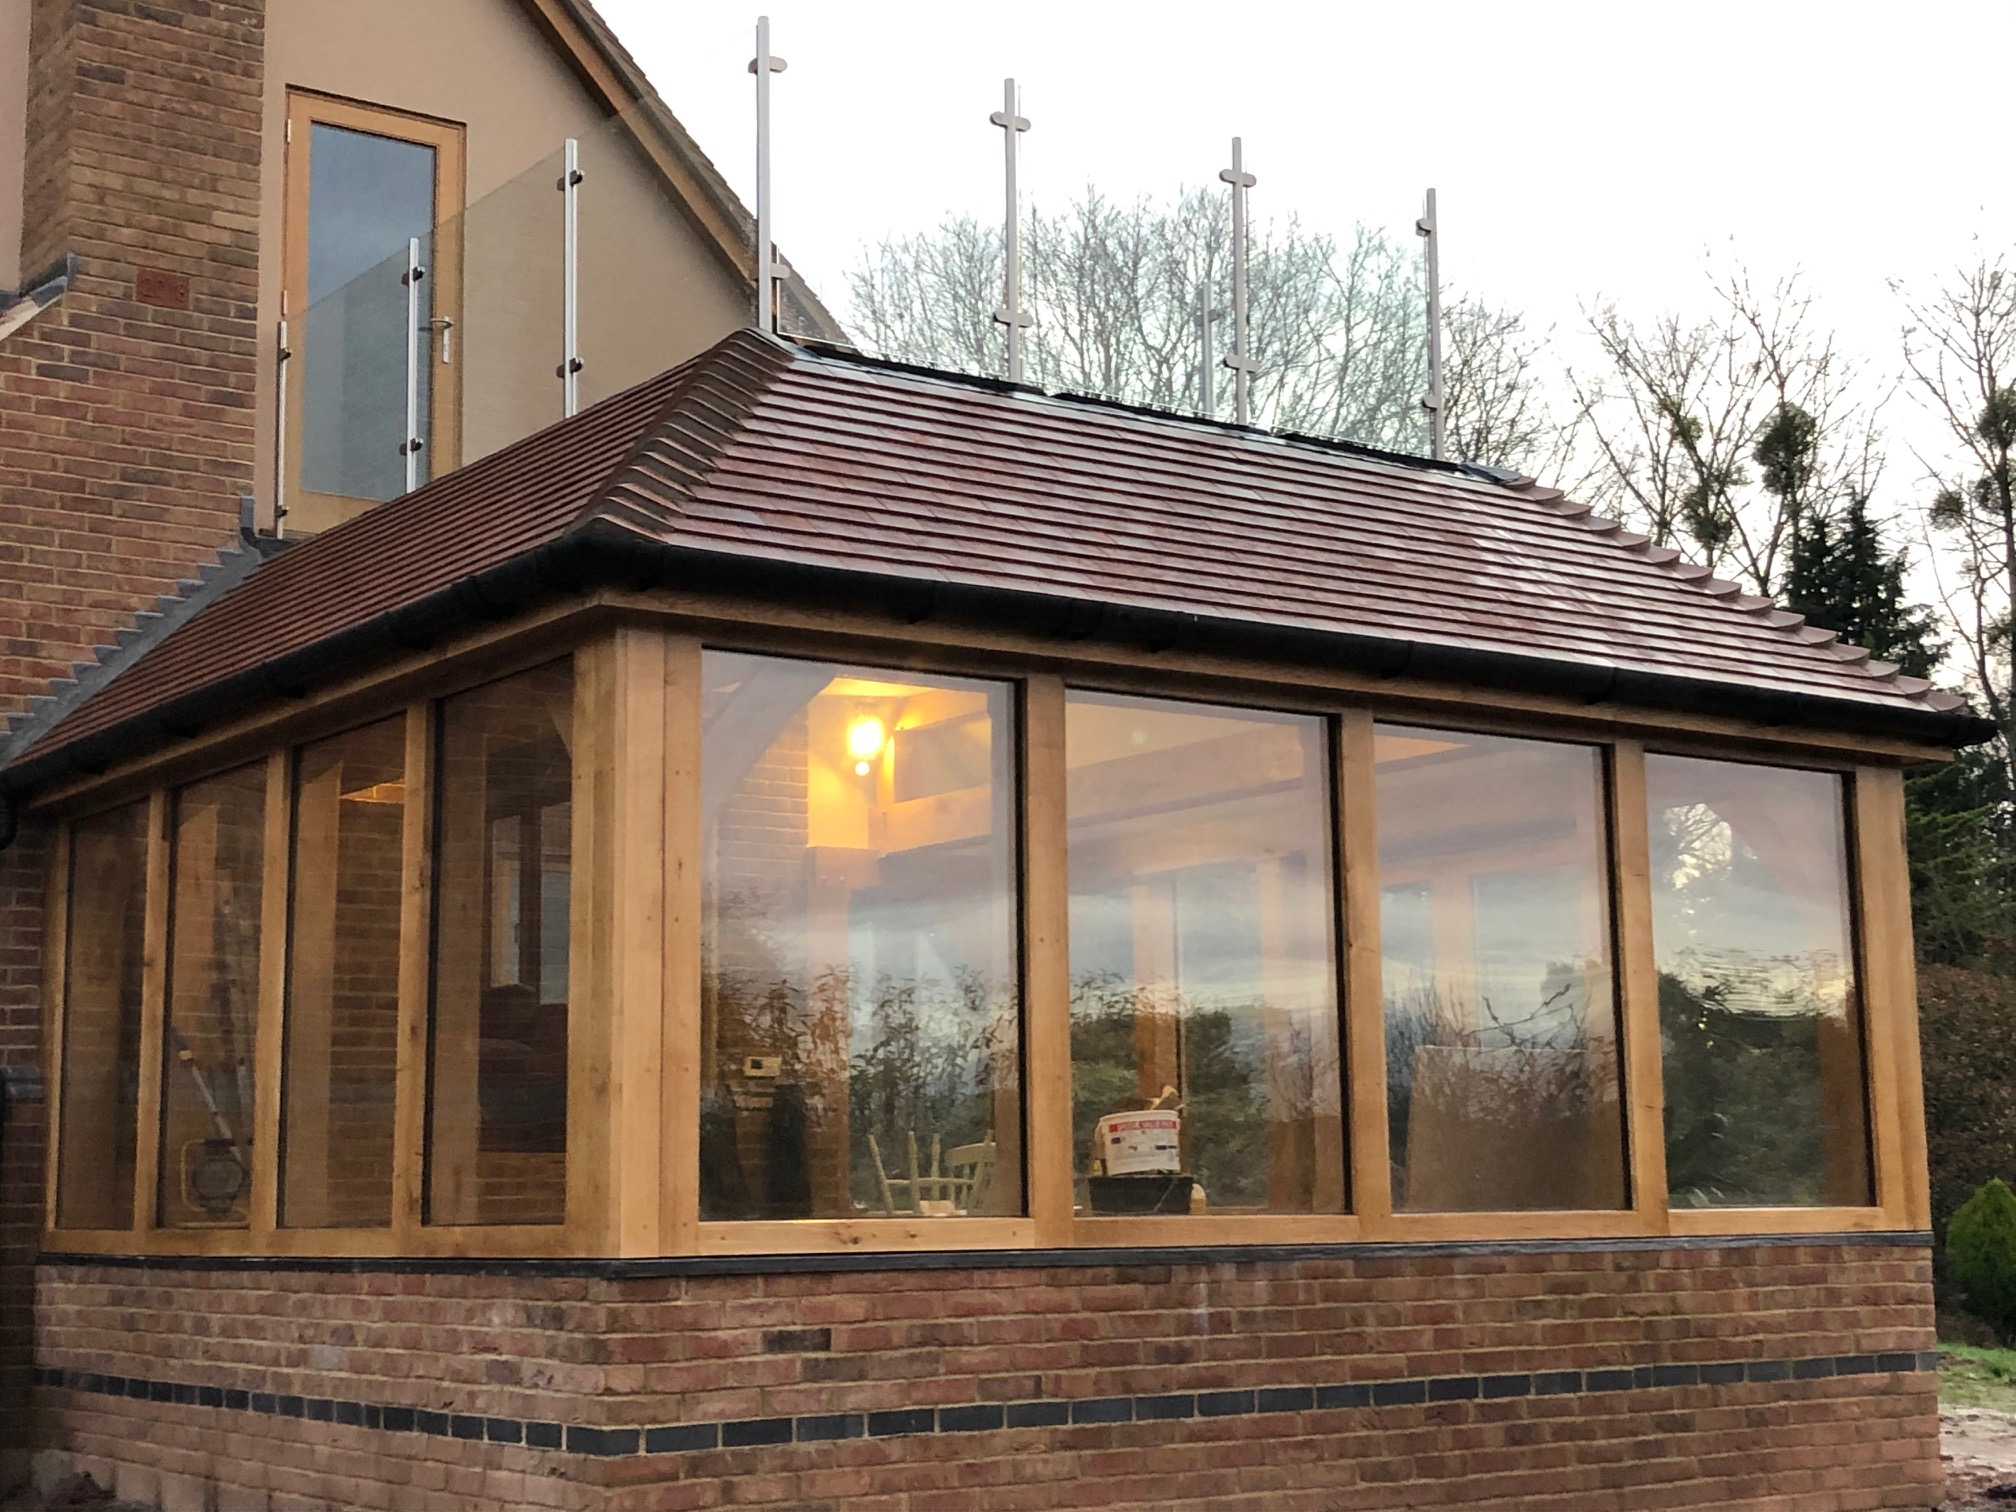 An oak framed garden room with balcony